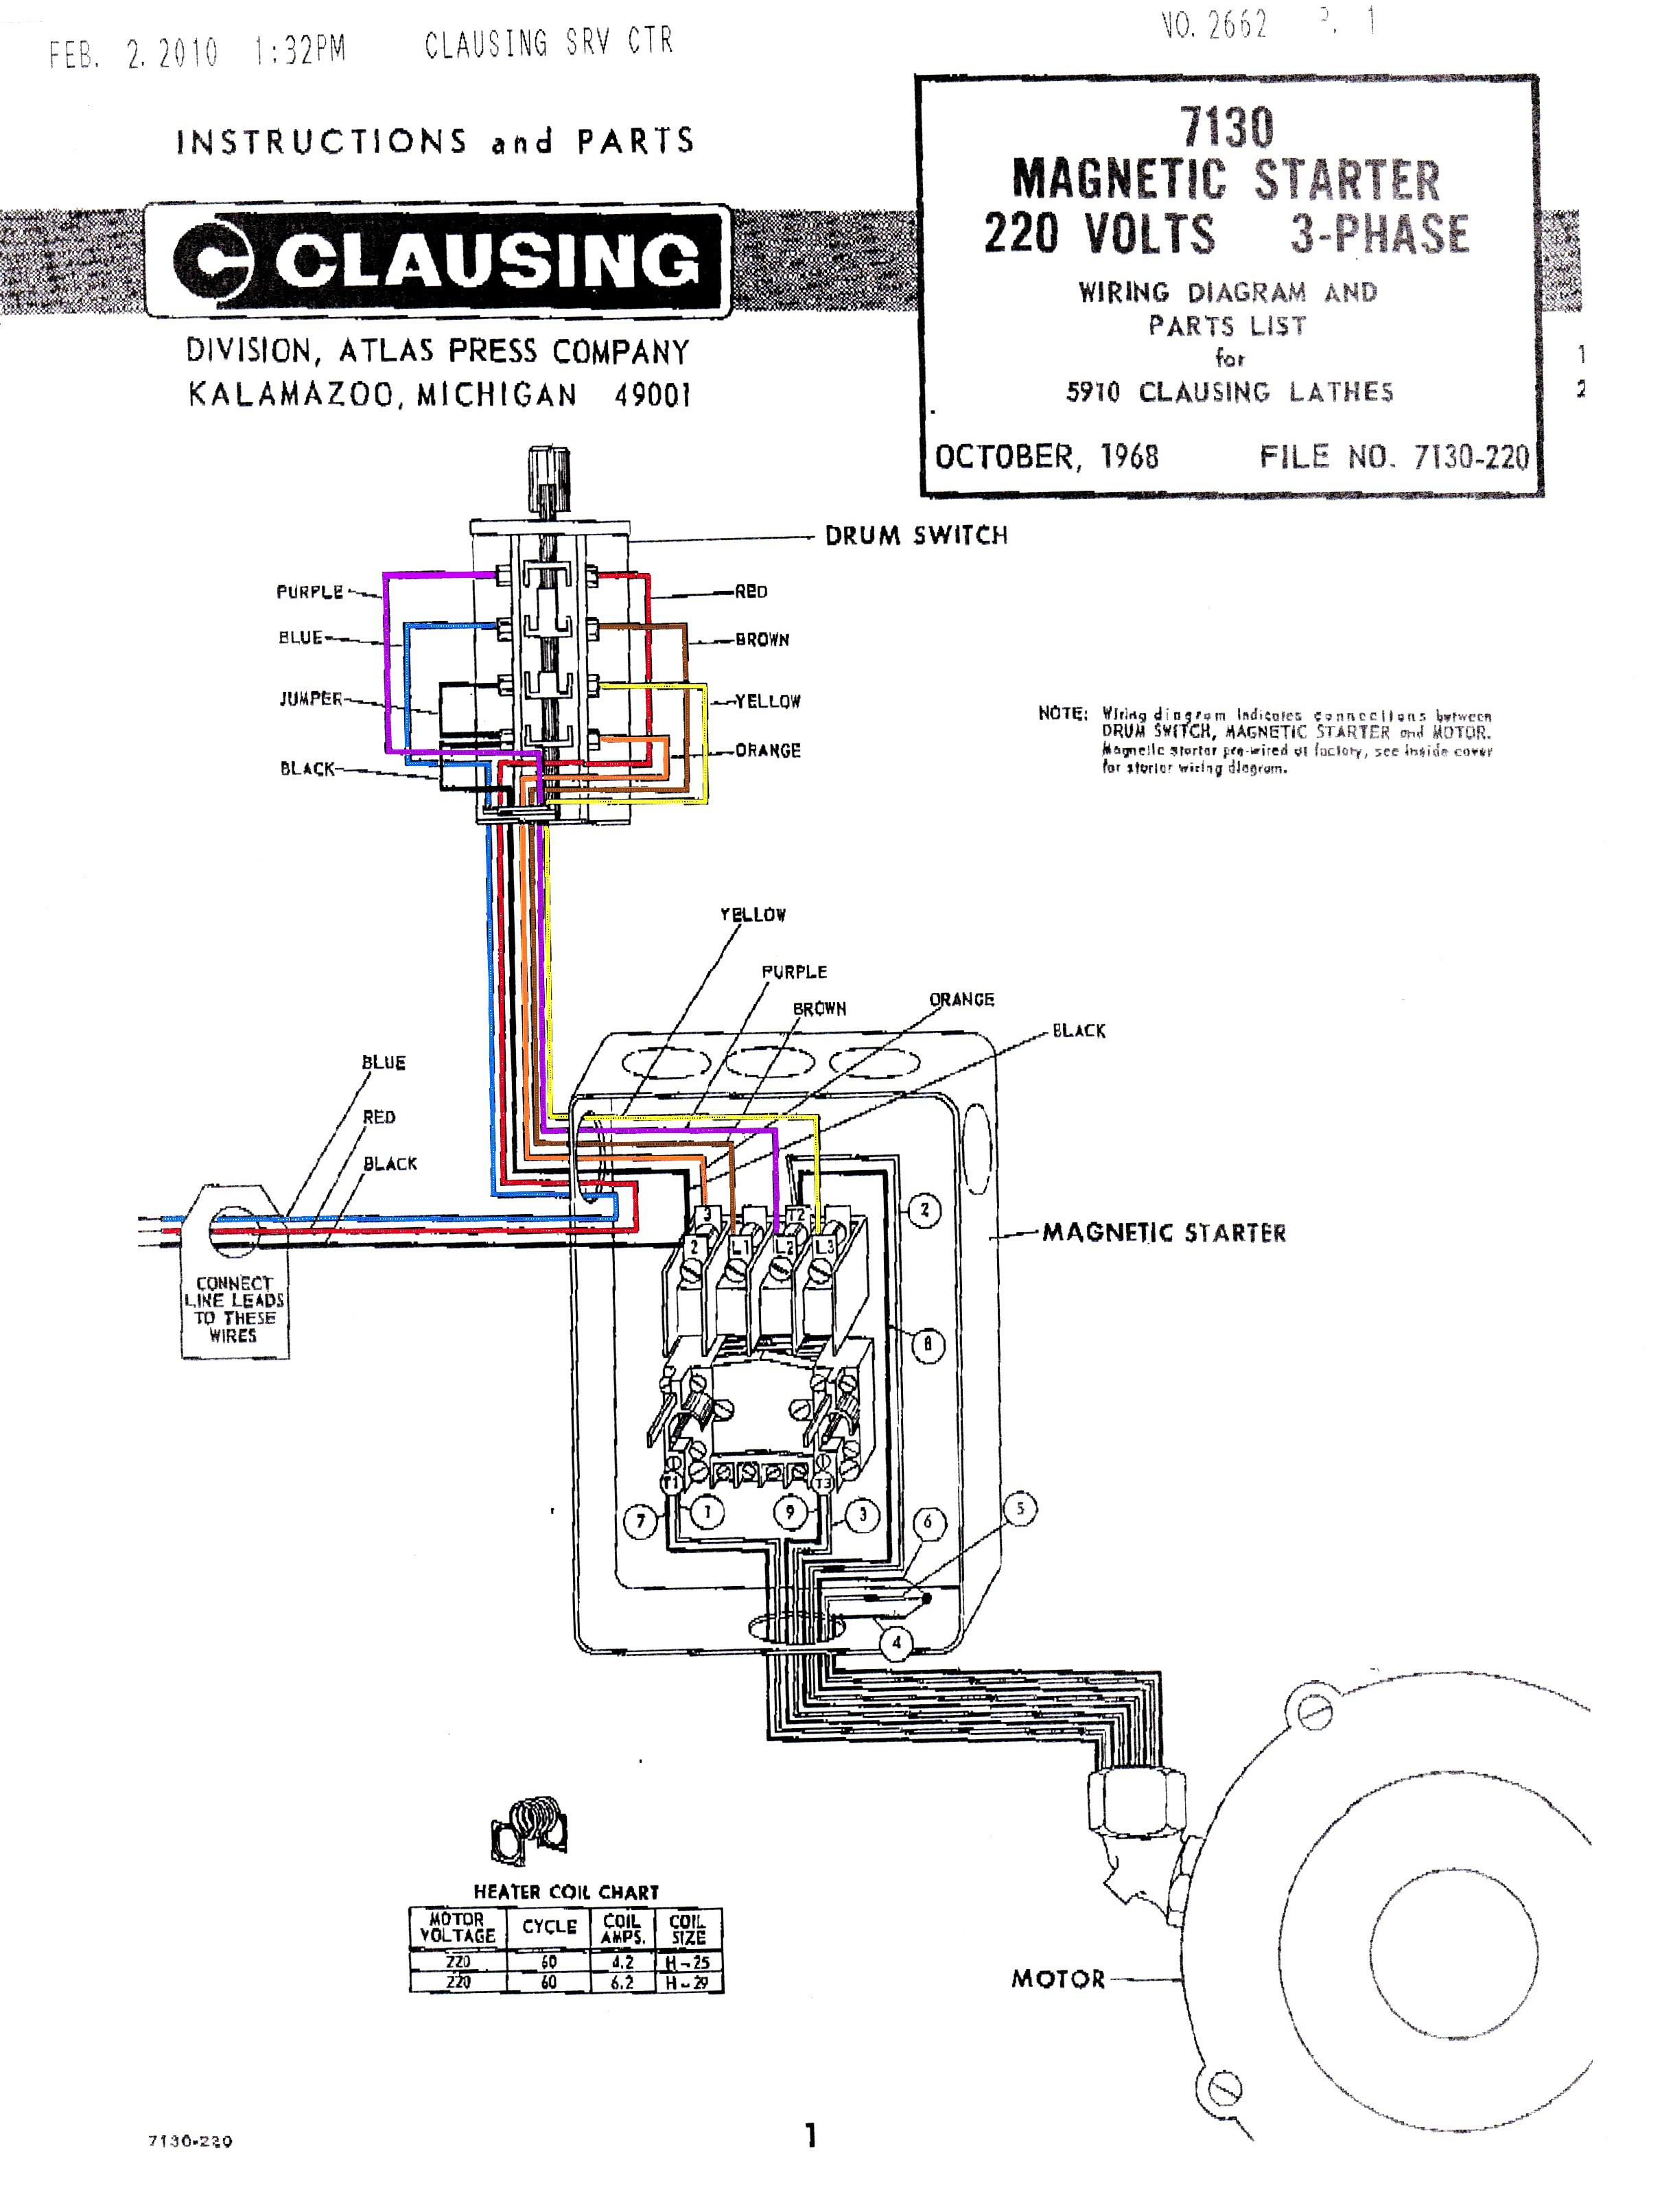 square d manual motor starter wiring diagram Collection-square d wiring diagram book wire center u2022 rh wattatech co Pressure Control Switch Wiring Diagram Single Phase Contactor Wiring Diagram 2-r